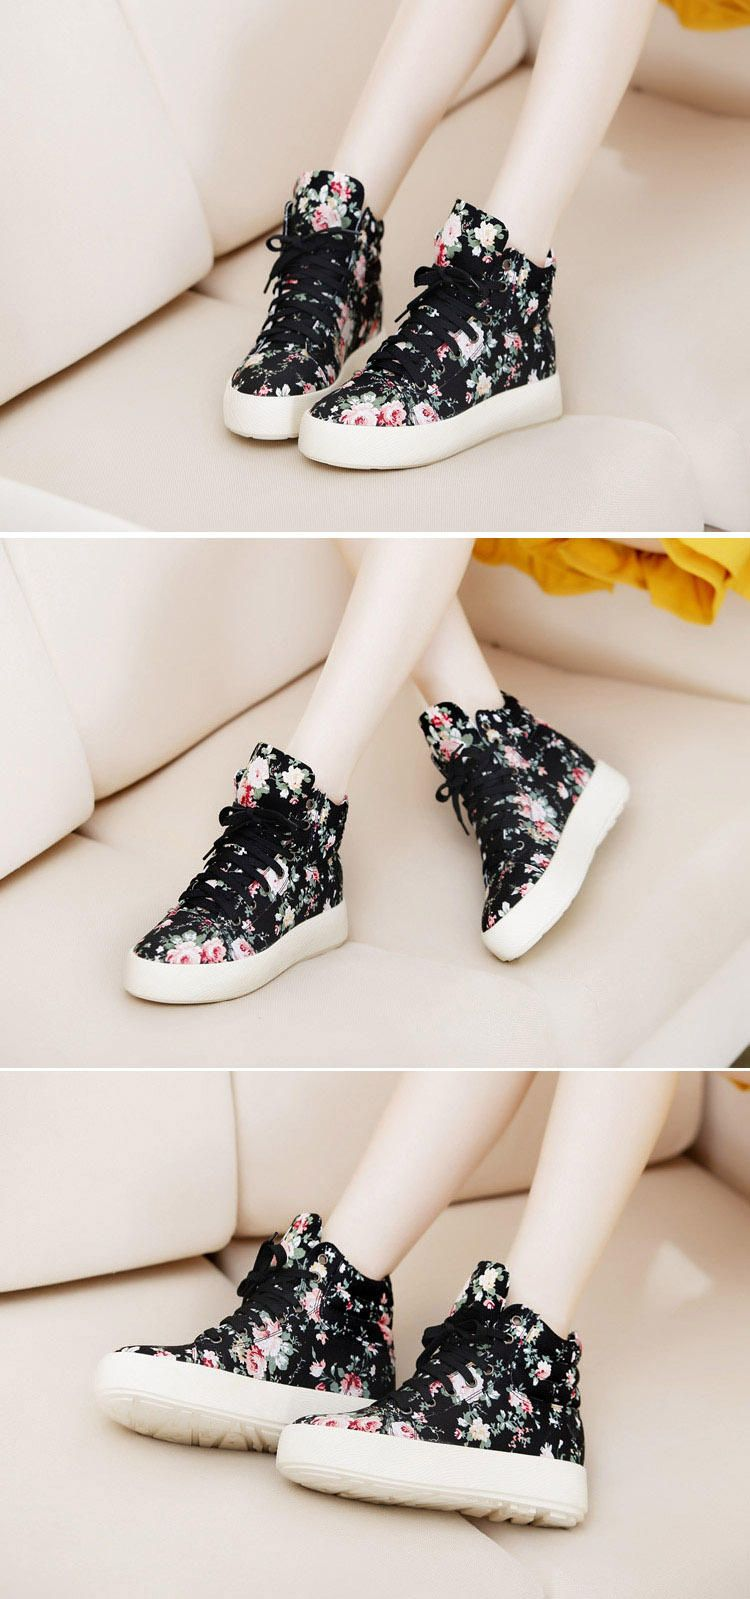 4a6803690da Buy Freesia Floral High-Top Platform Sneakers